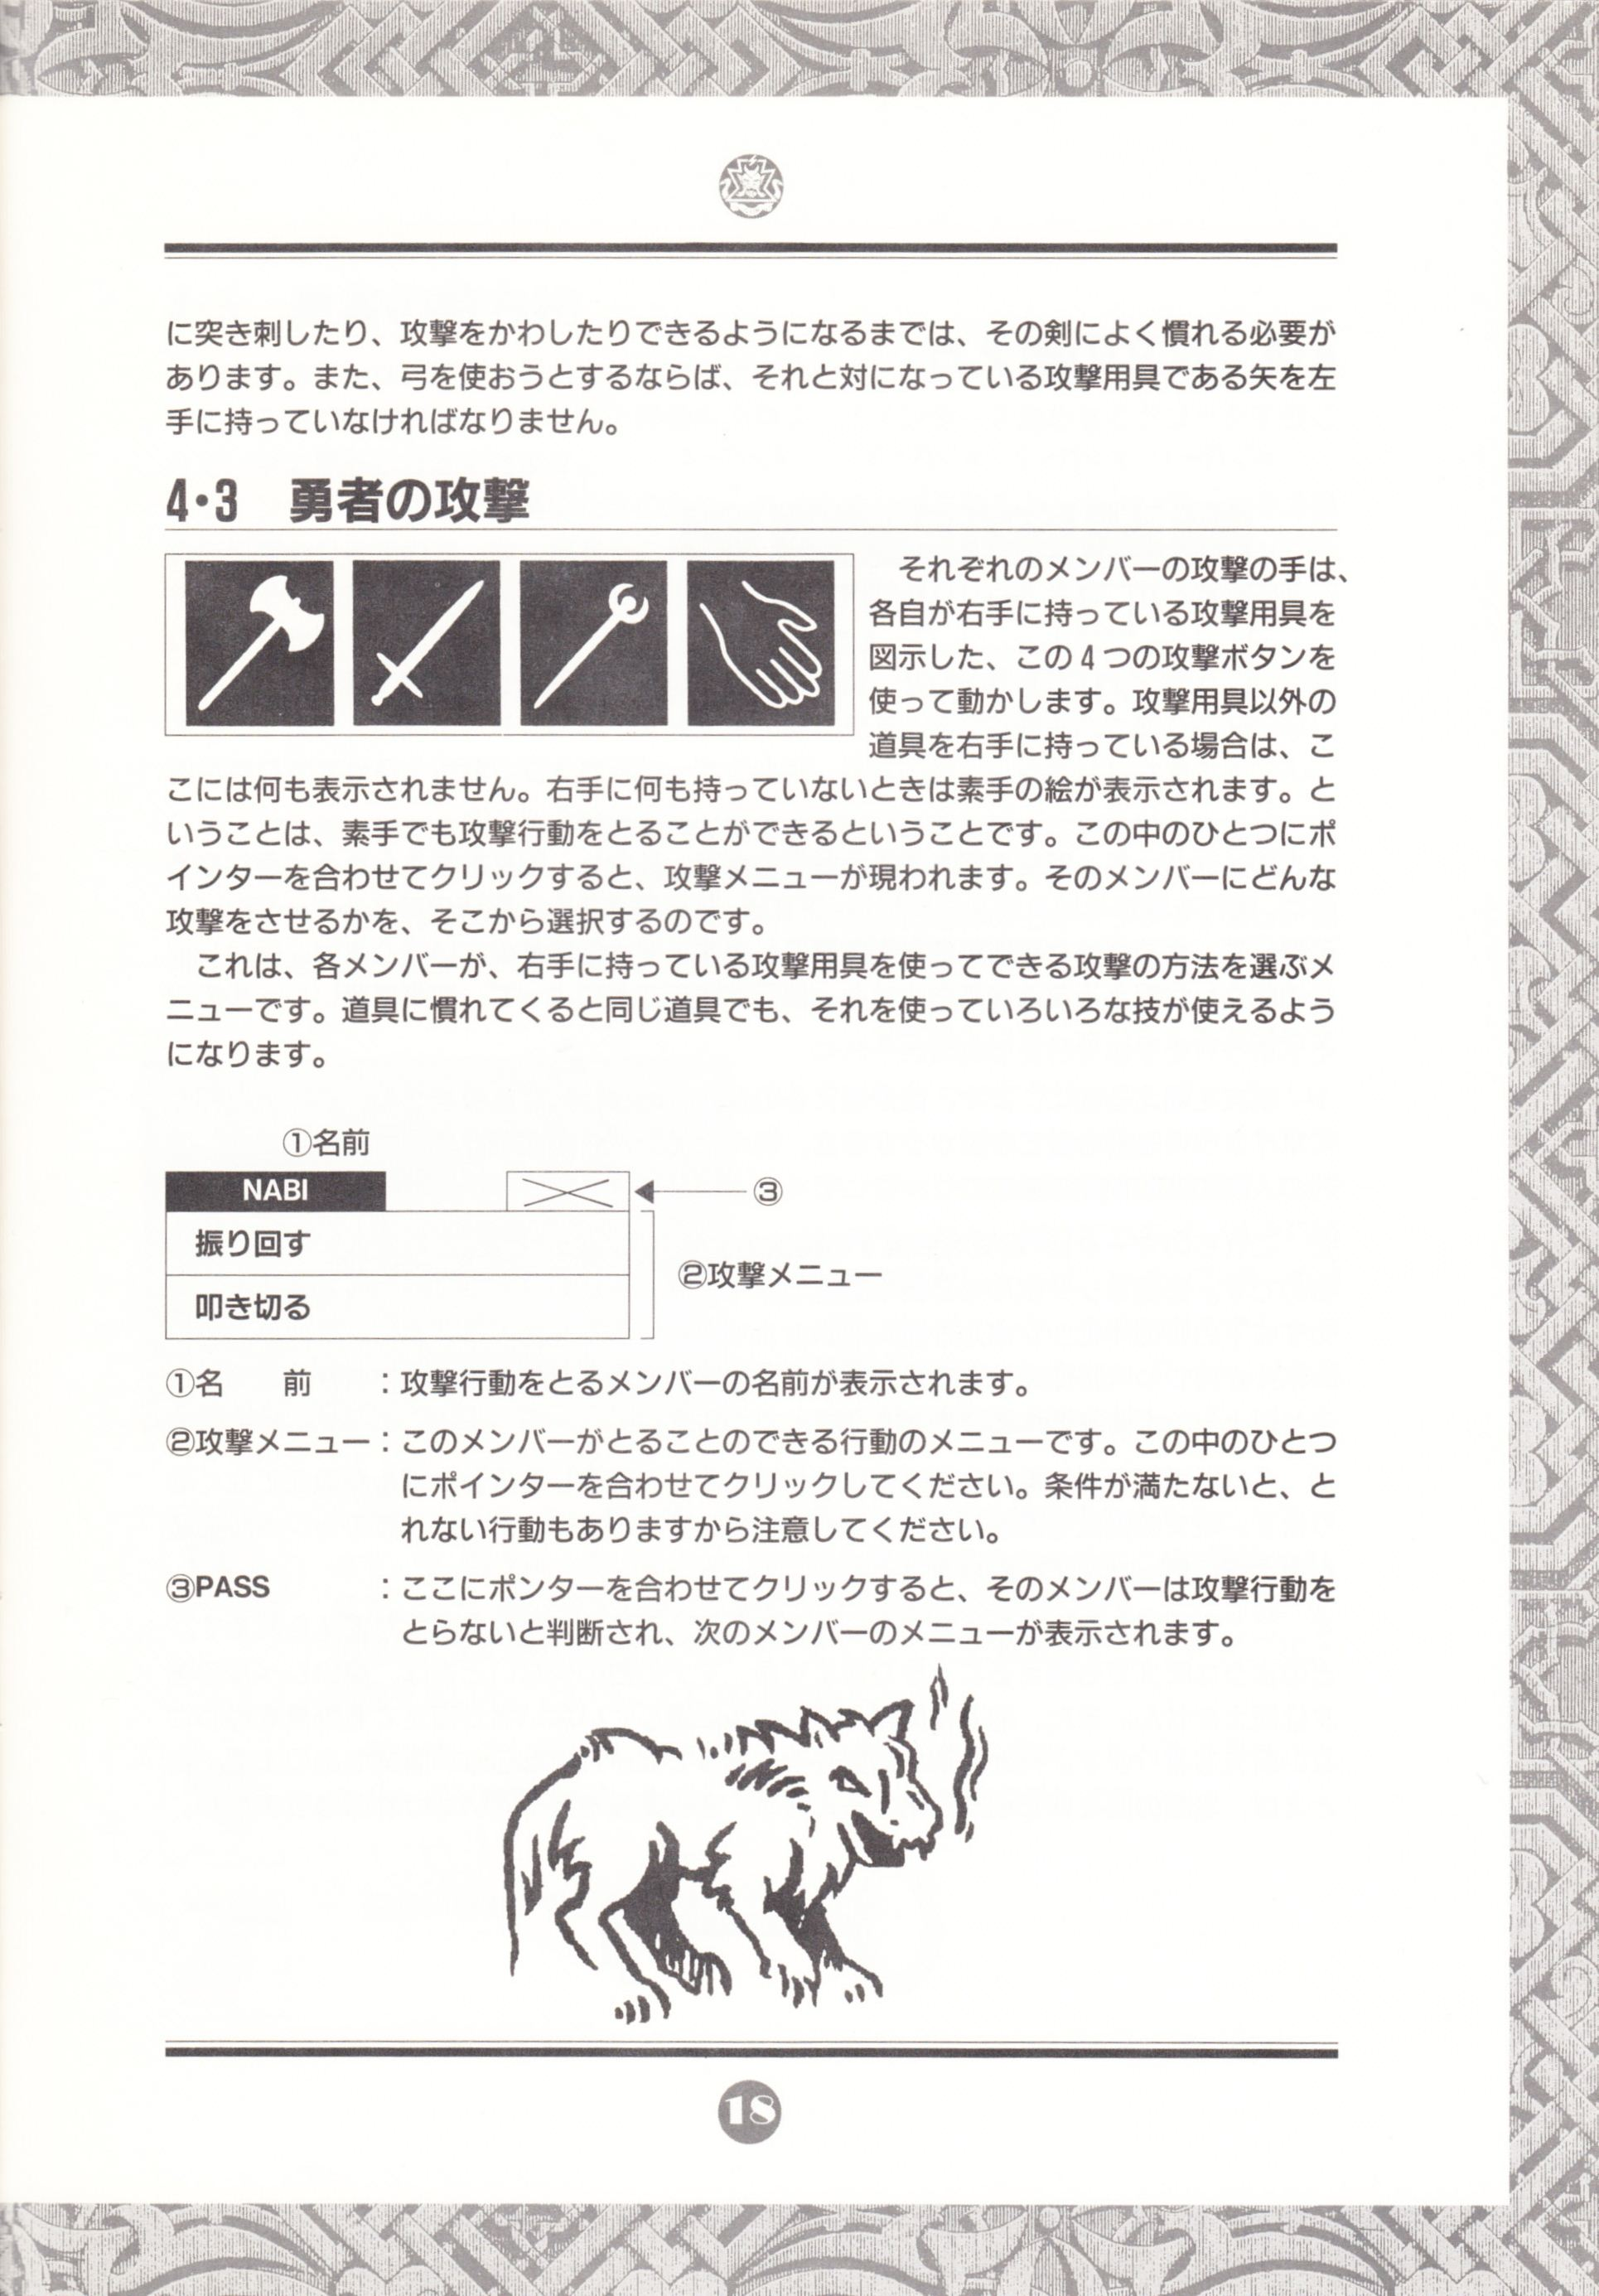 Game - Chaos Strikes Back - JP - FM Towns - An Operation Manual - Page 021 - Scan